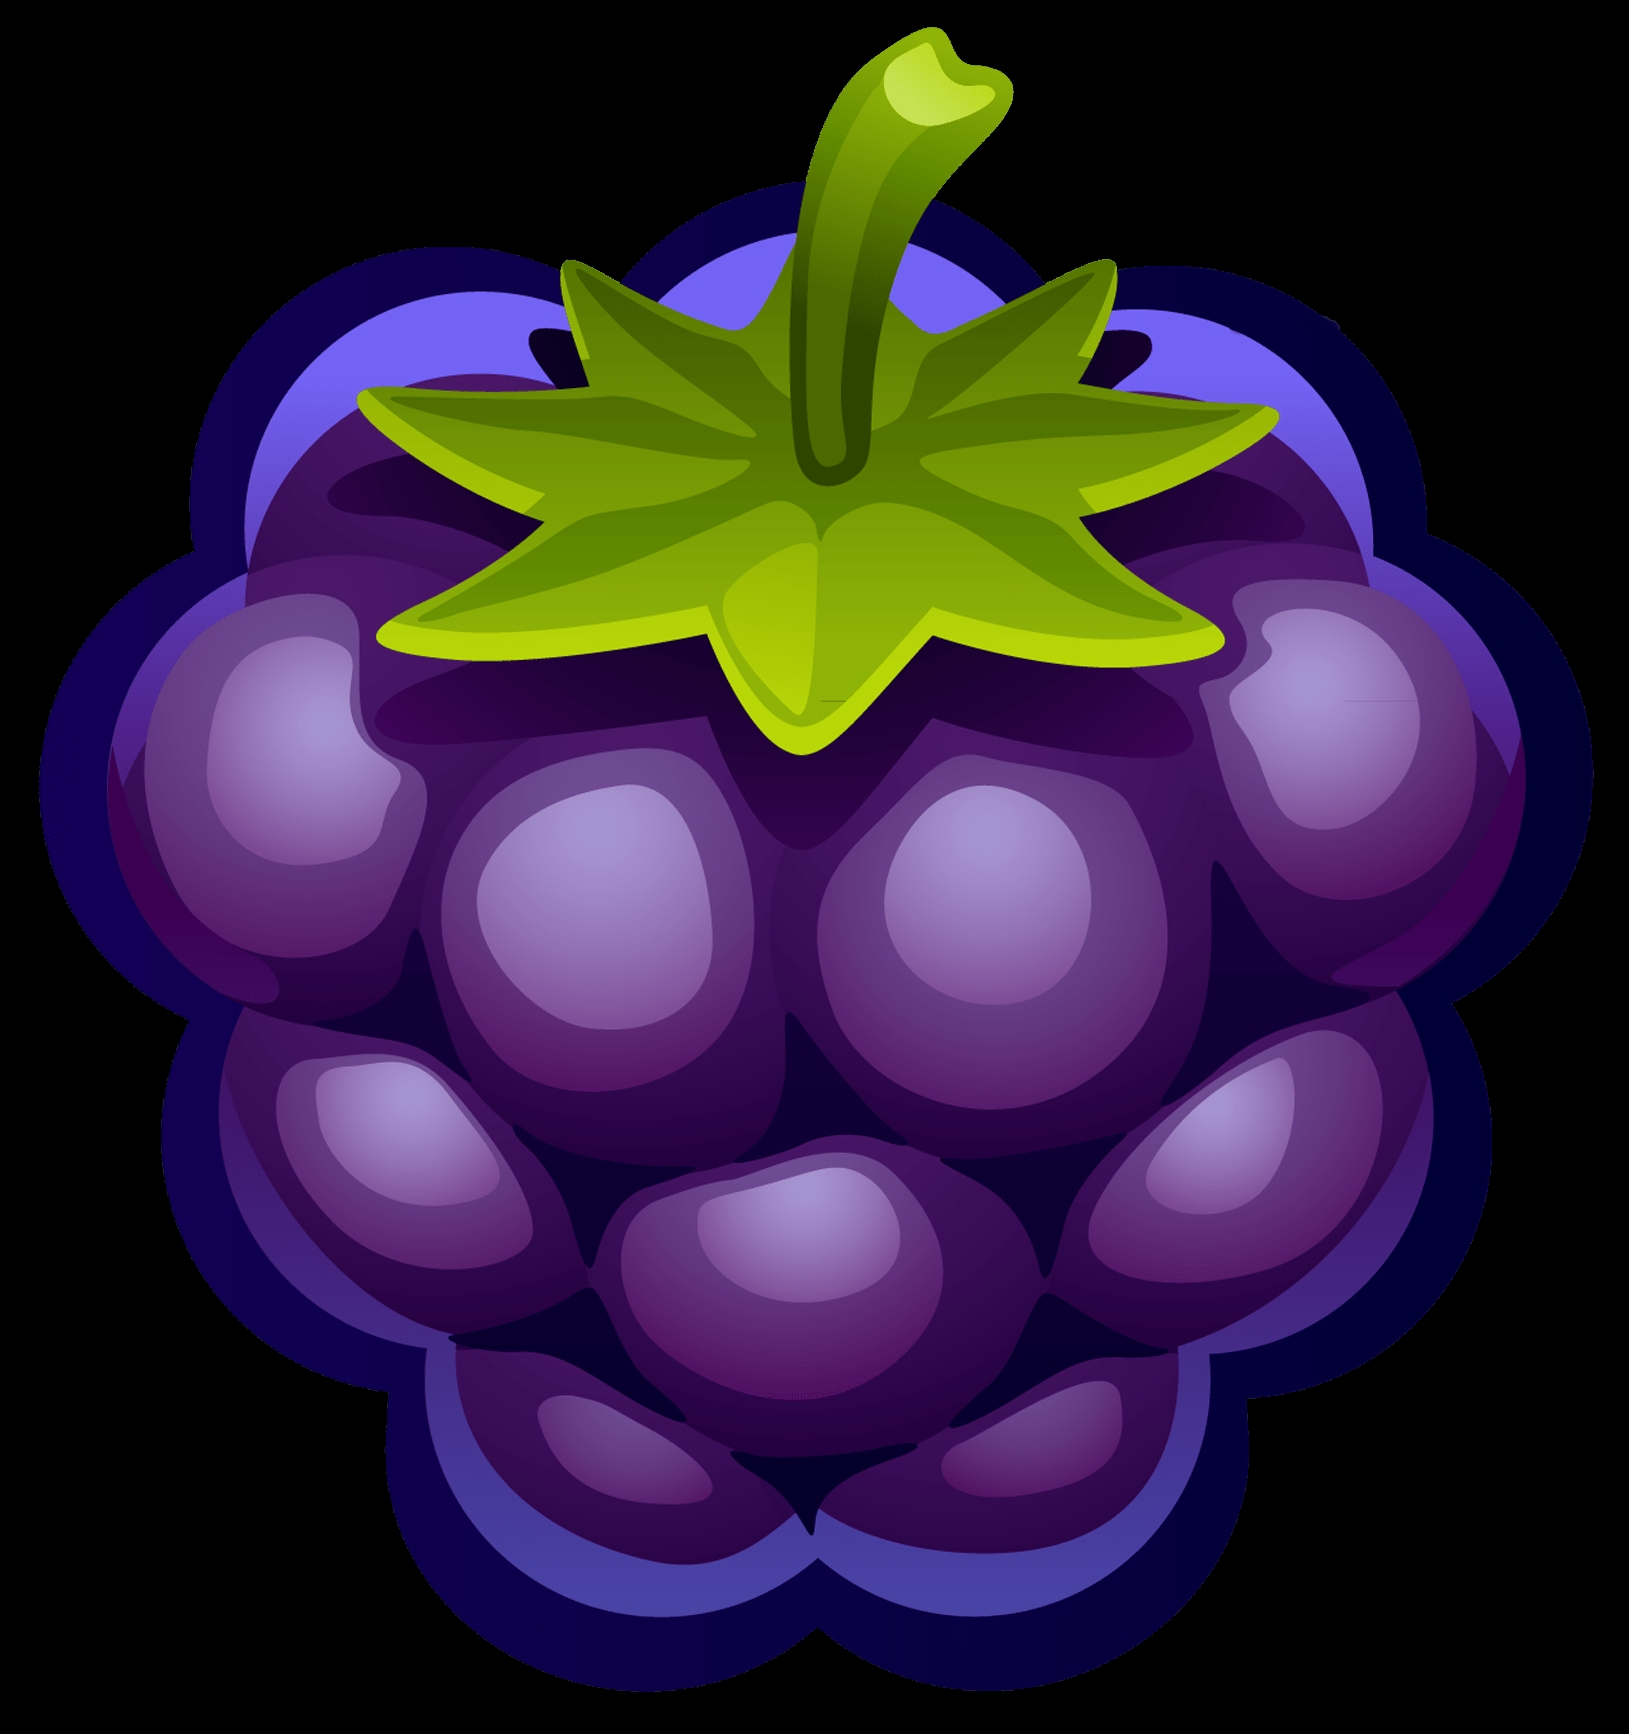 Fresh gallery digital collection. Blueberry clipart animated